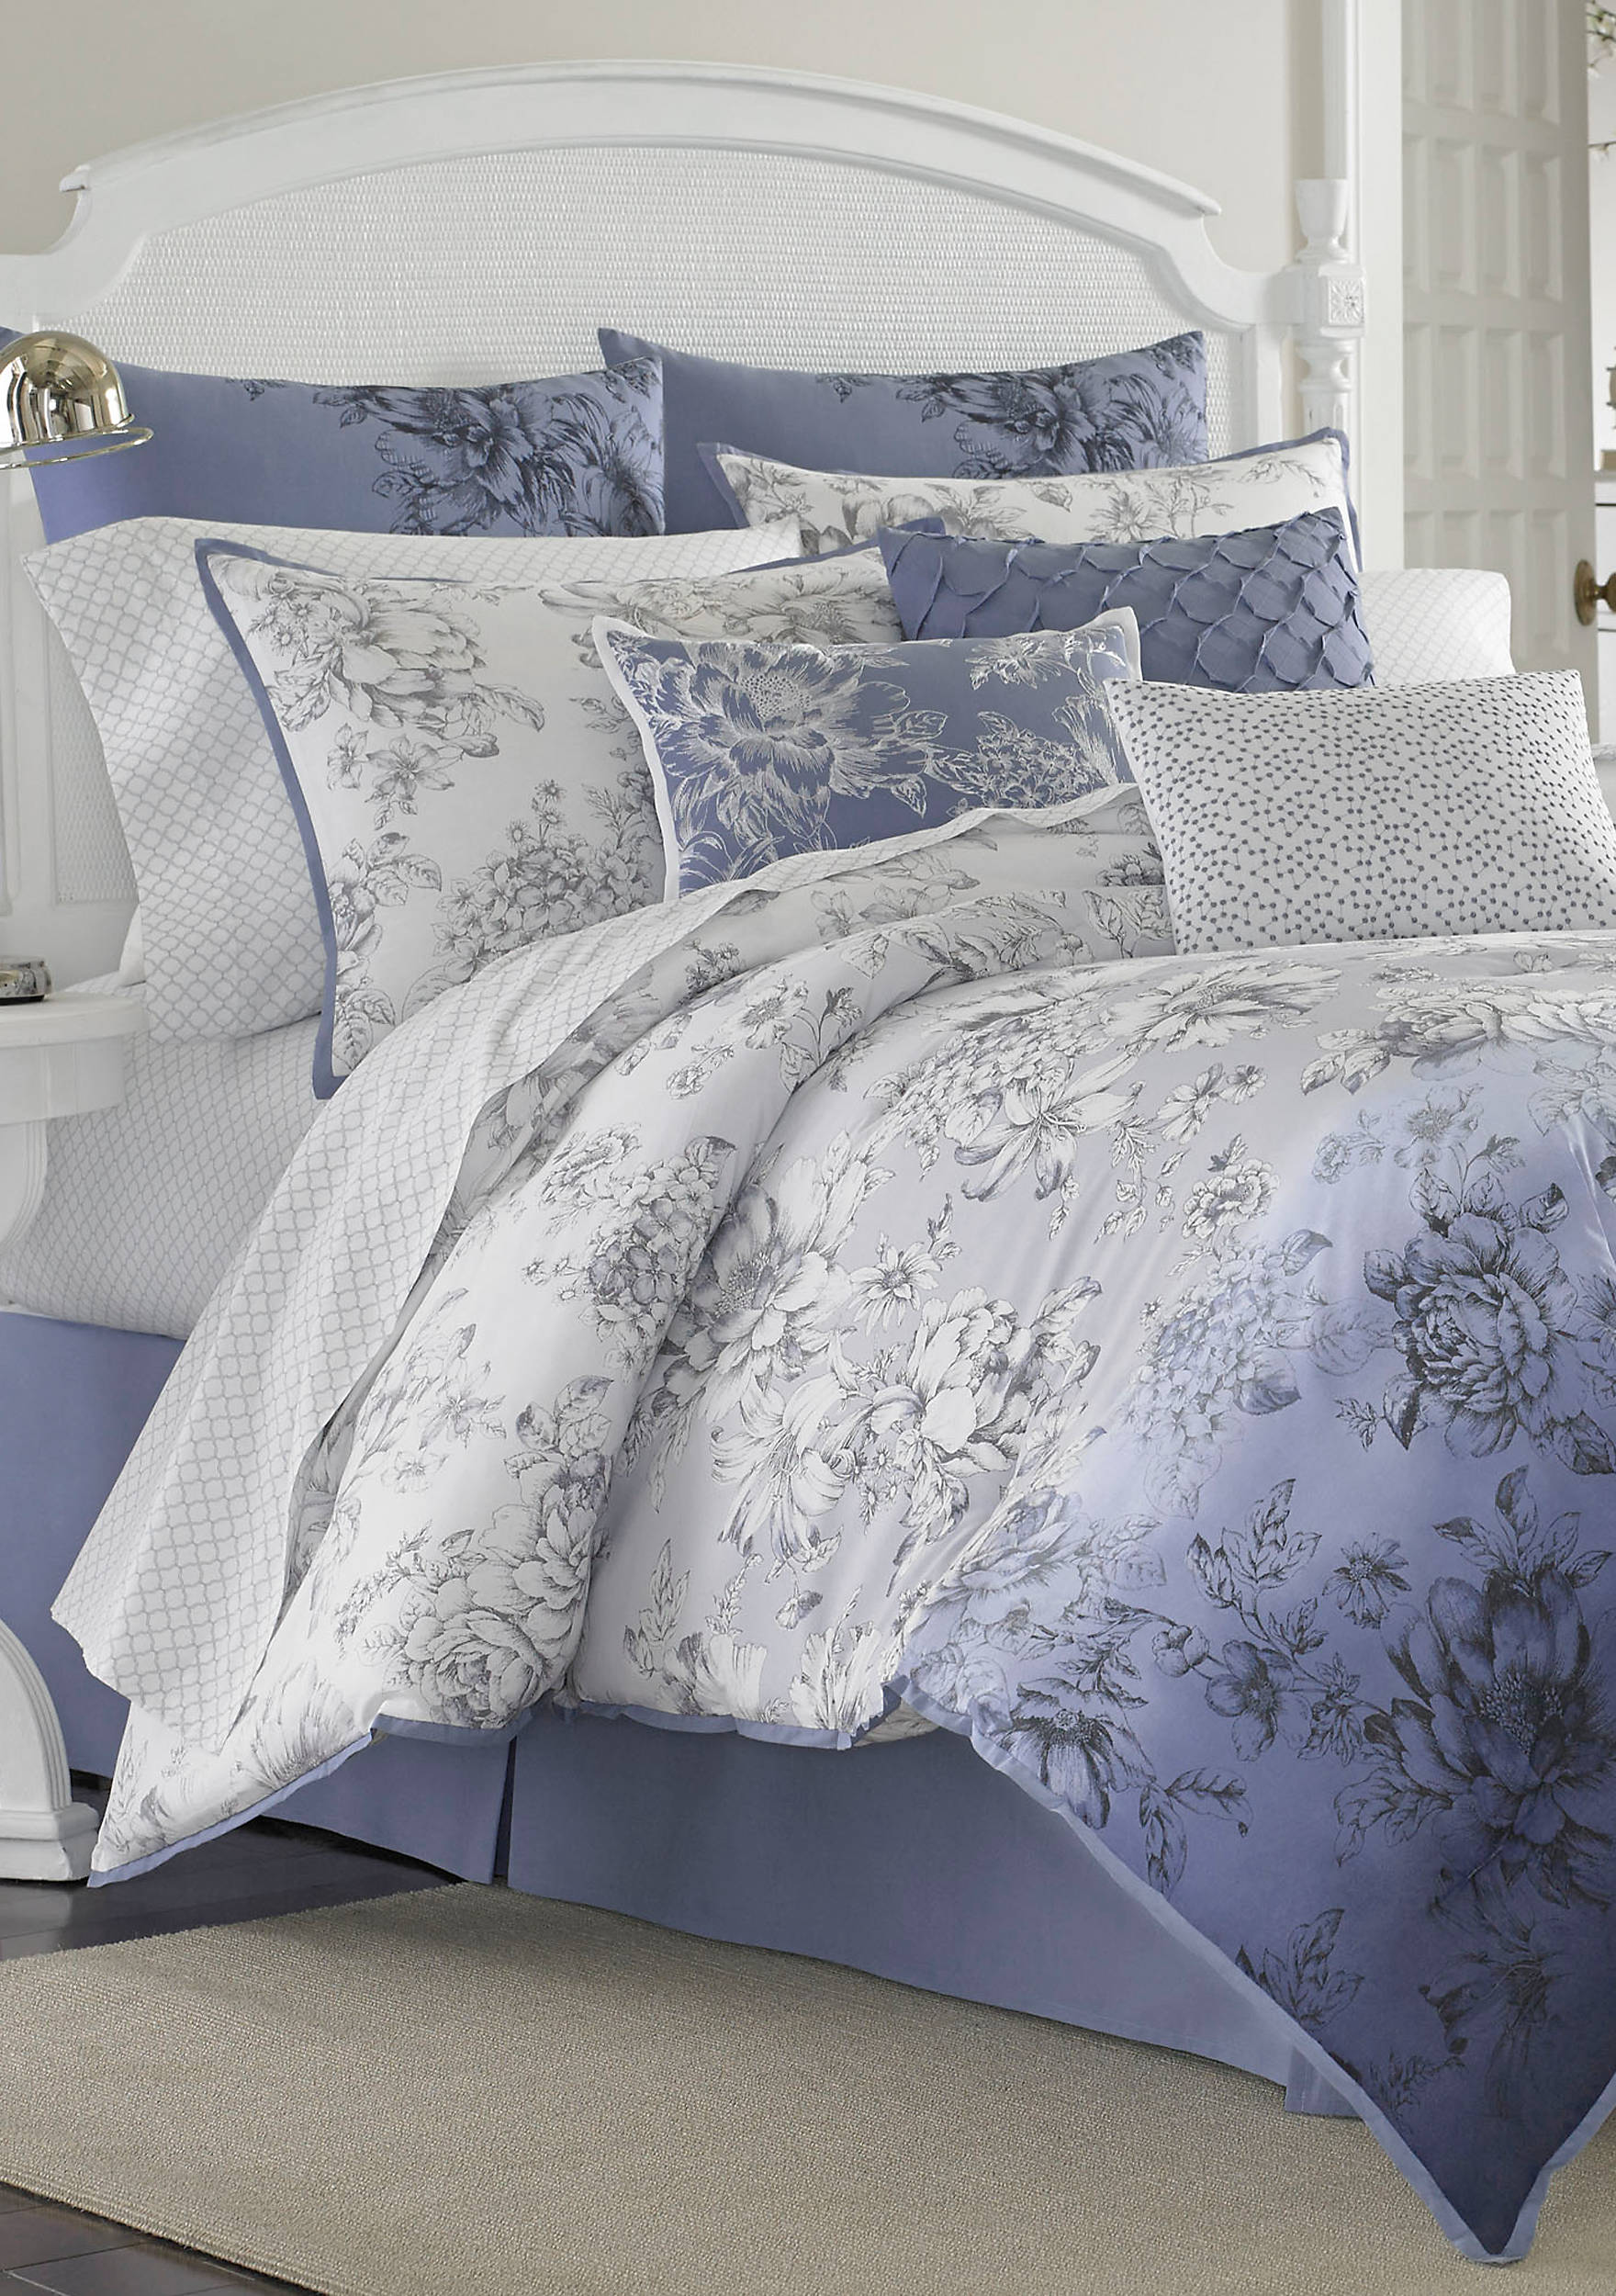 Delphine Bedding Collection. Bedding Collections   Bedding Sets   belk